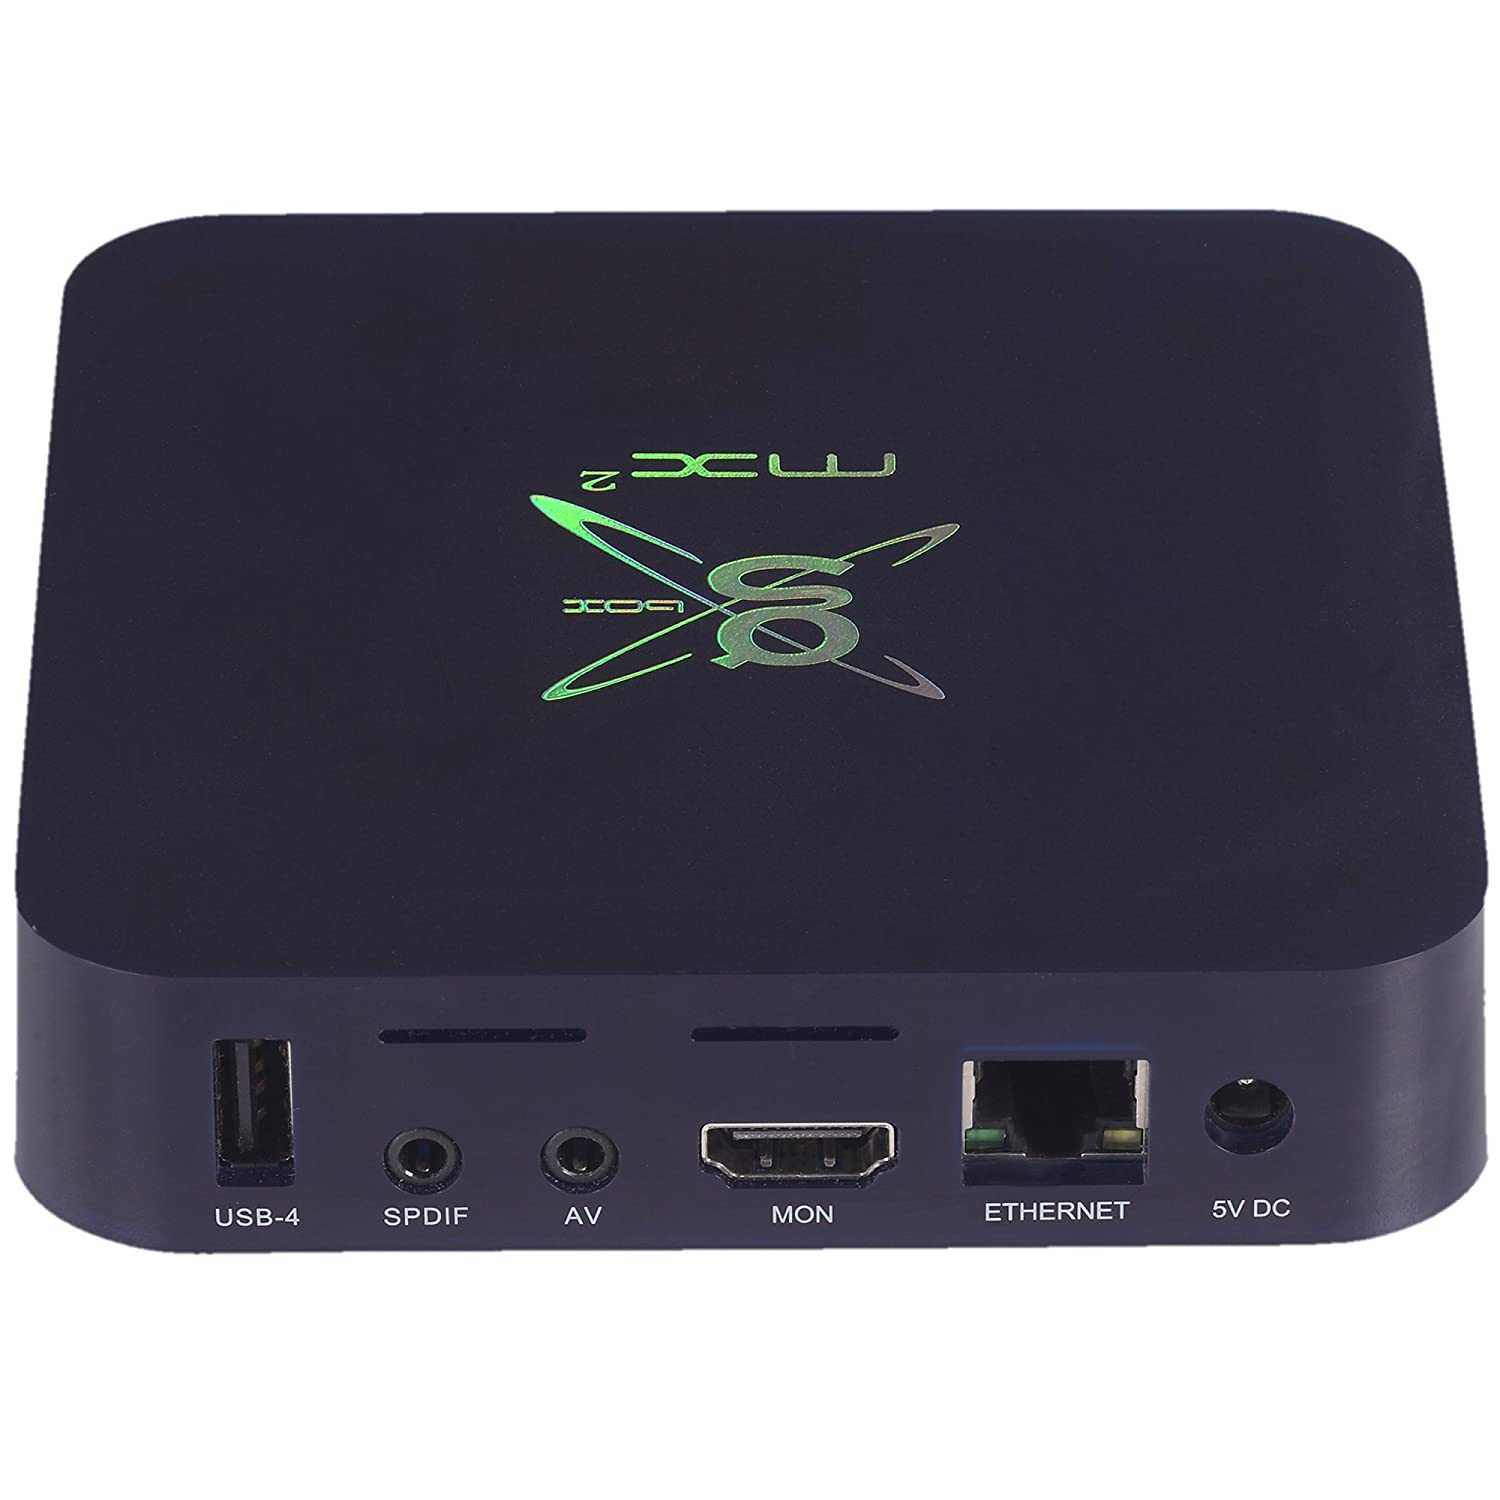 G-Box Midnight MX2 Android 4.2 Jelly Bean Dual Core XBMC Streaming Mini HTPC TV Box Player: Amazon.es: Electrónica